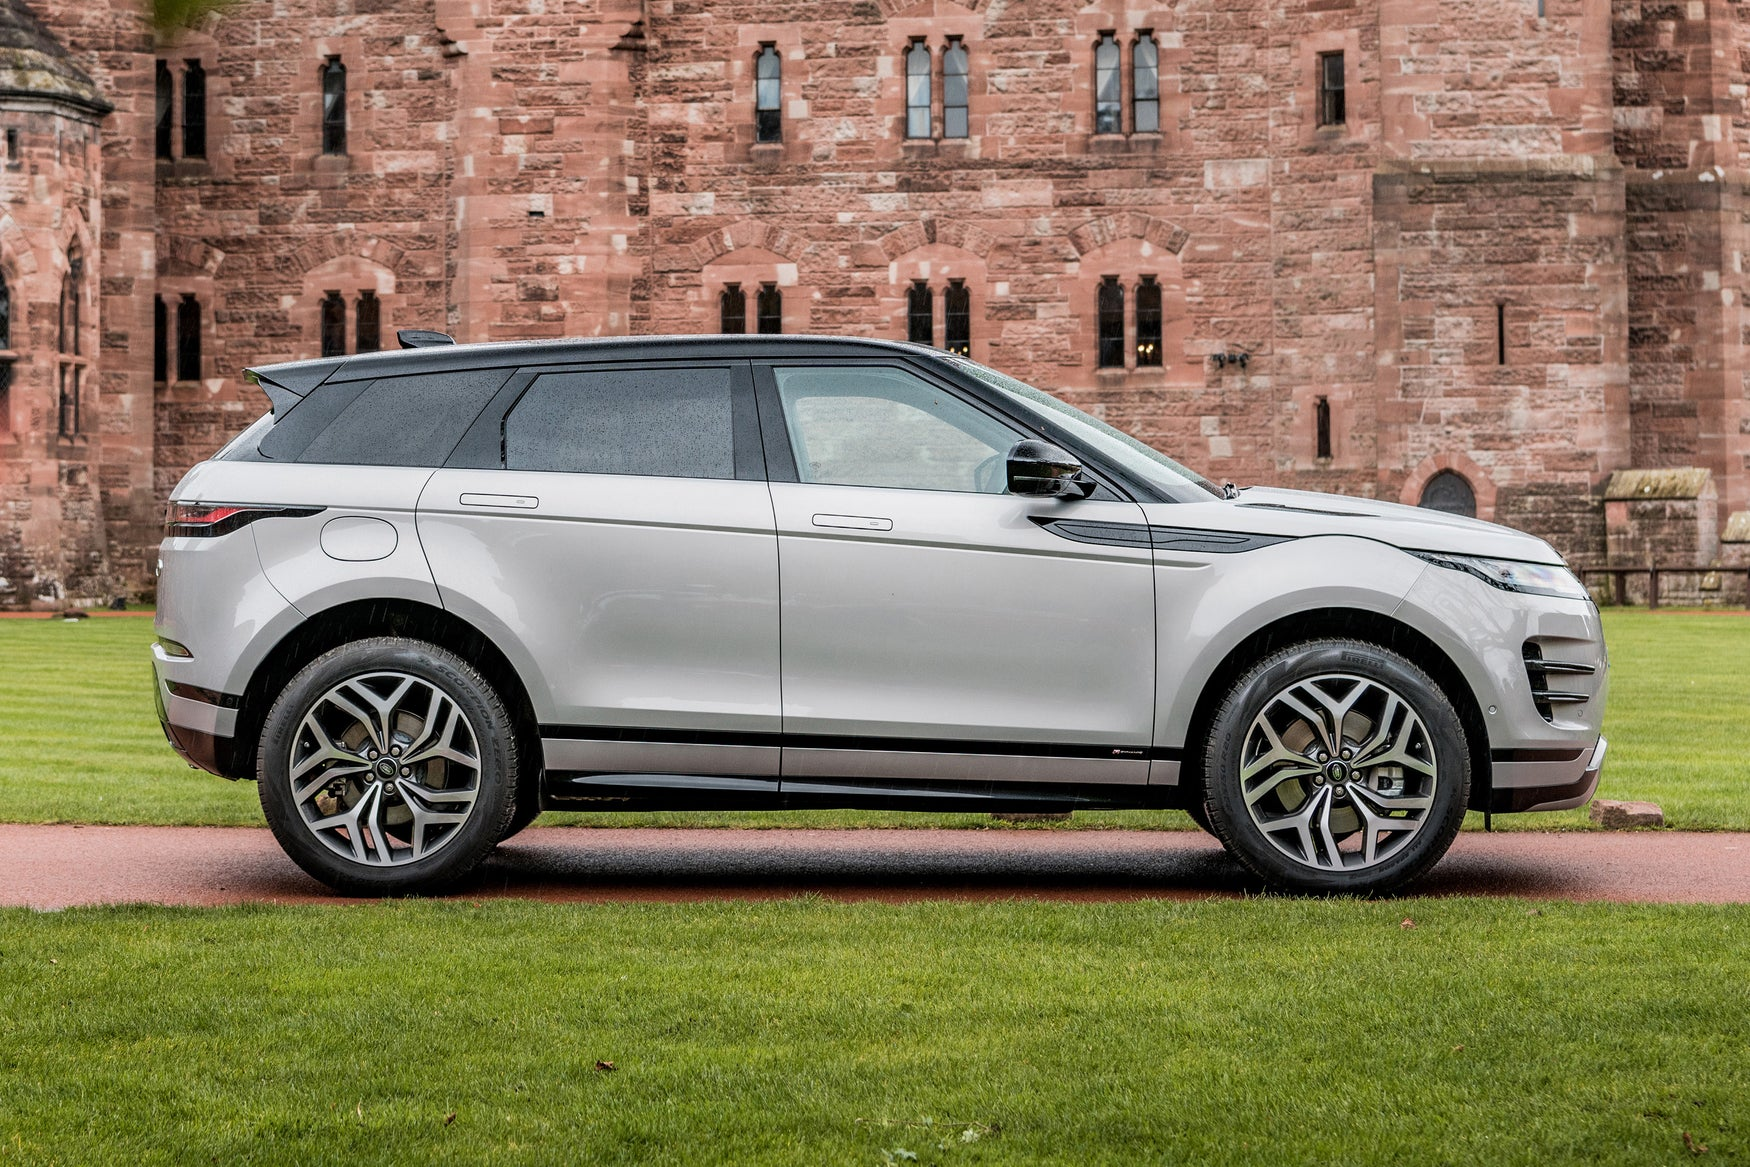 Range Rover Evoque 2019 right exterior